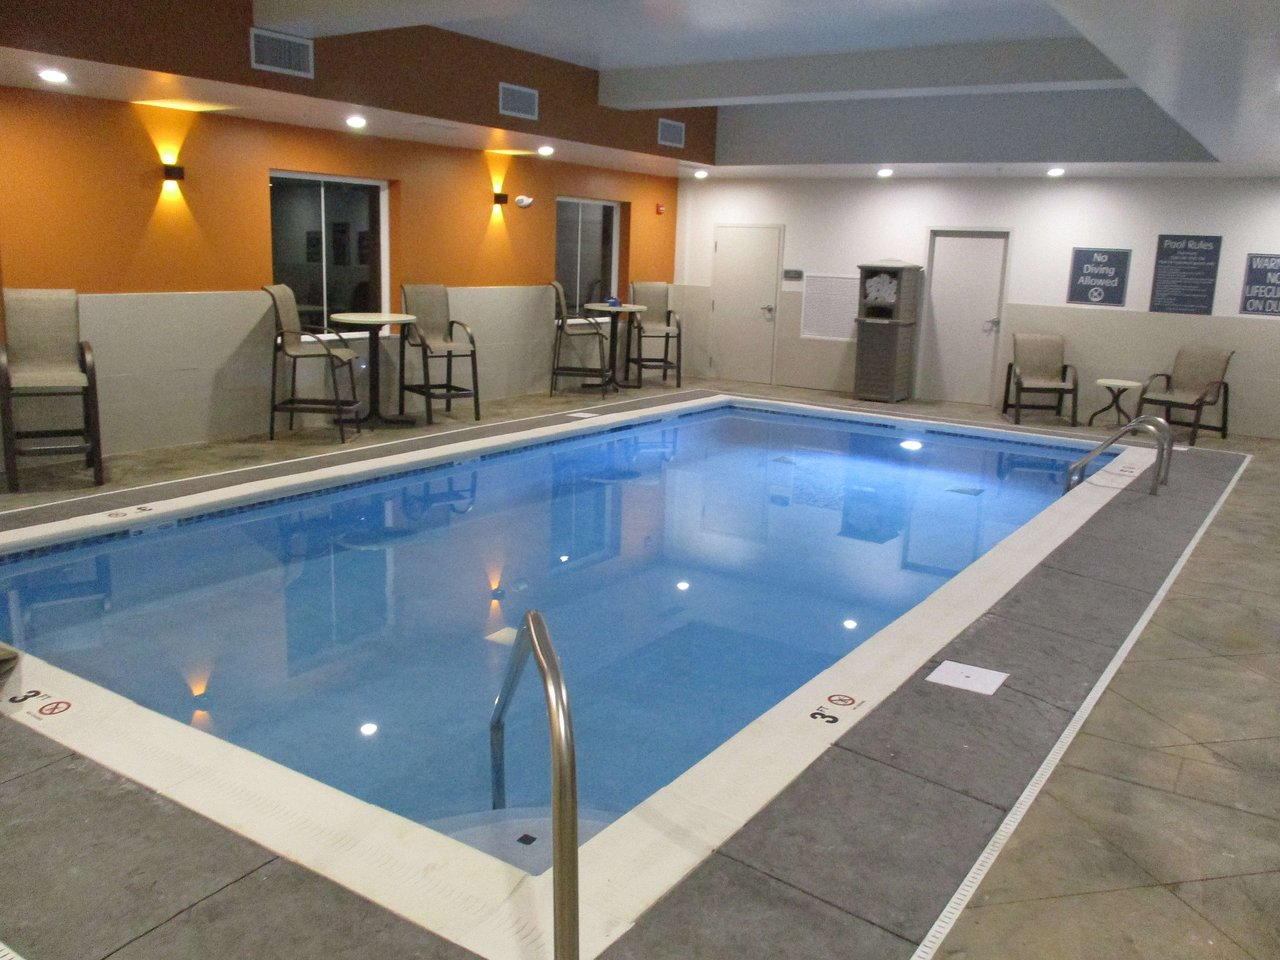 The 10 Best Owensboro Hotels With A Pool Of 2020 With Prices